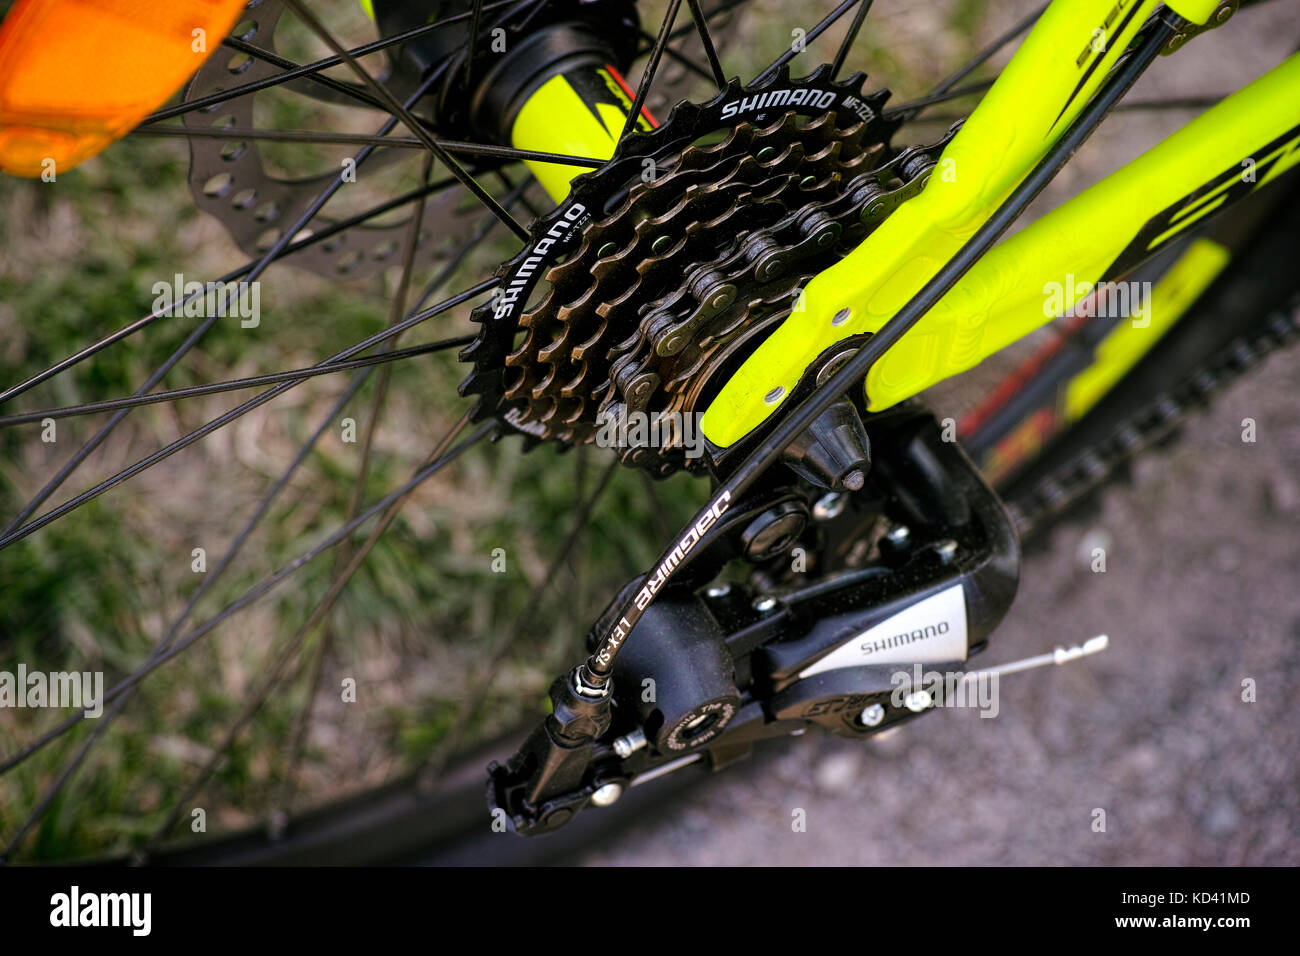 Tambov, Russian Federation - May 07, 2017 Shimano gear cassette on rear bicycle wheel. Closeup. Stock Photo